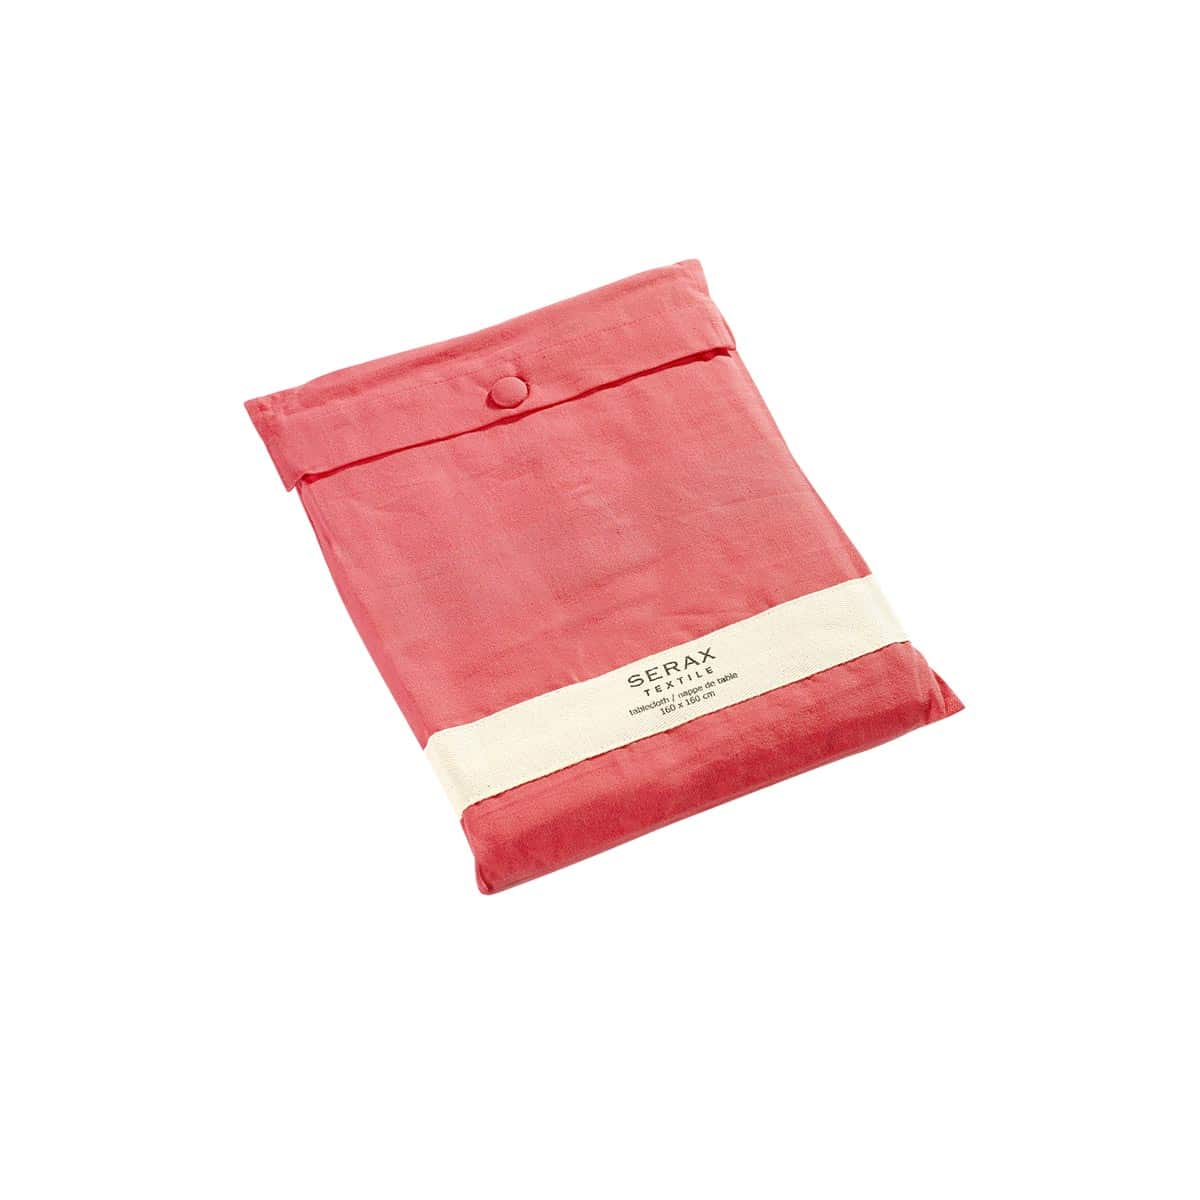 nappe de table sweet cherry serax rose rouge zeeloft